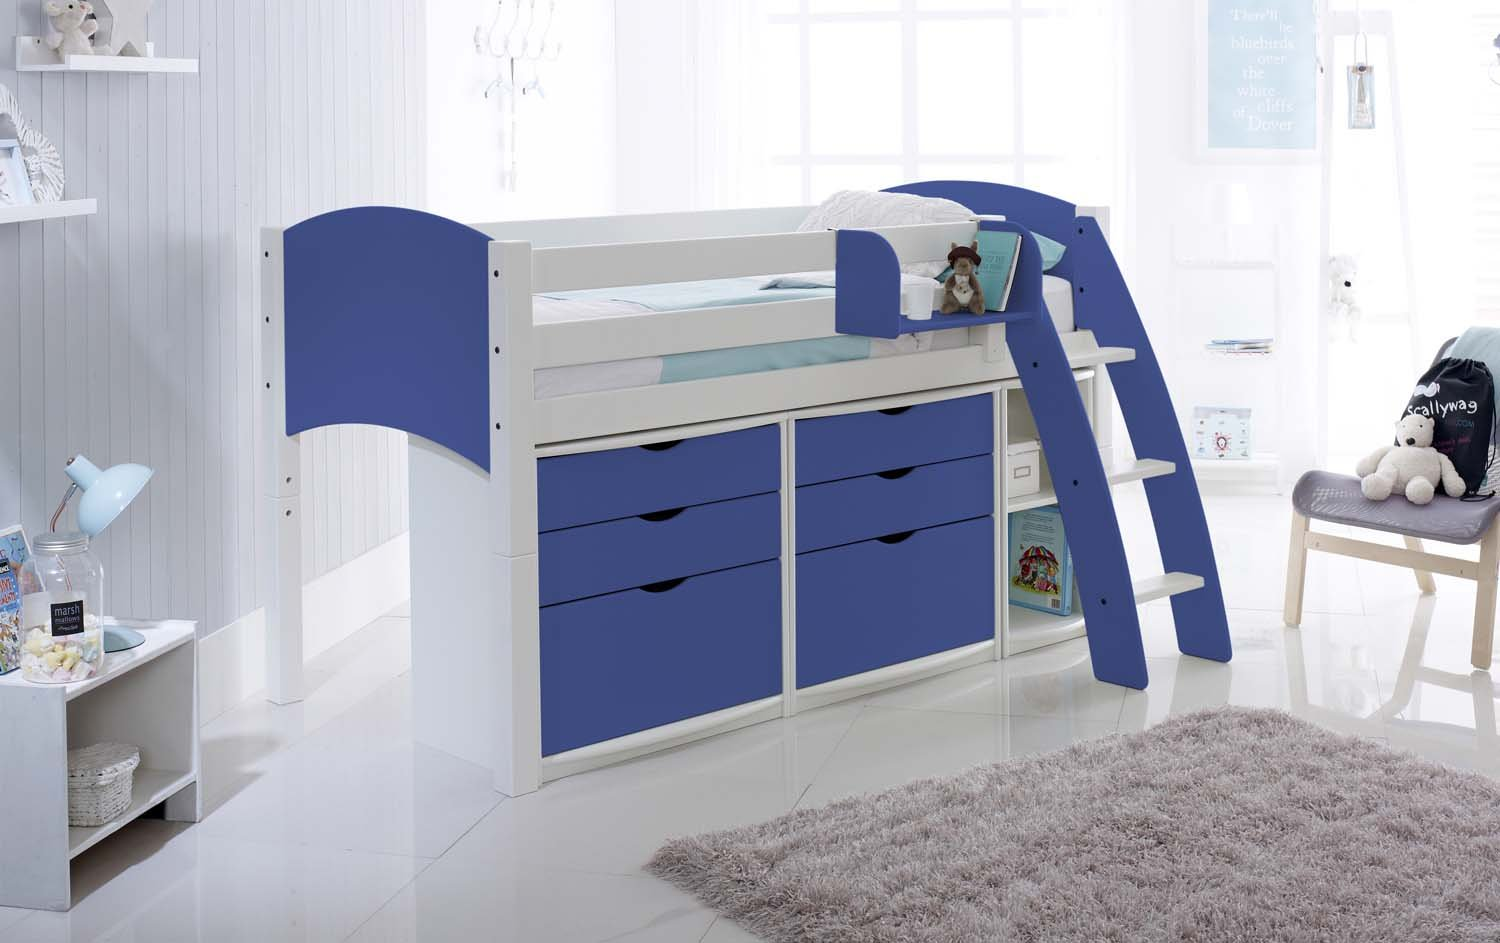 2ft 6 Cabin Bed Scallywag Convertible Mid Height Cabin Bed With Drawer Units And Shelf